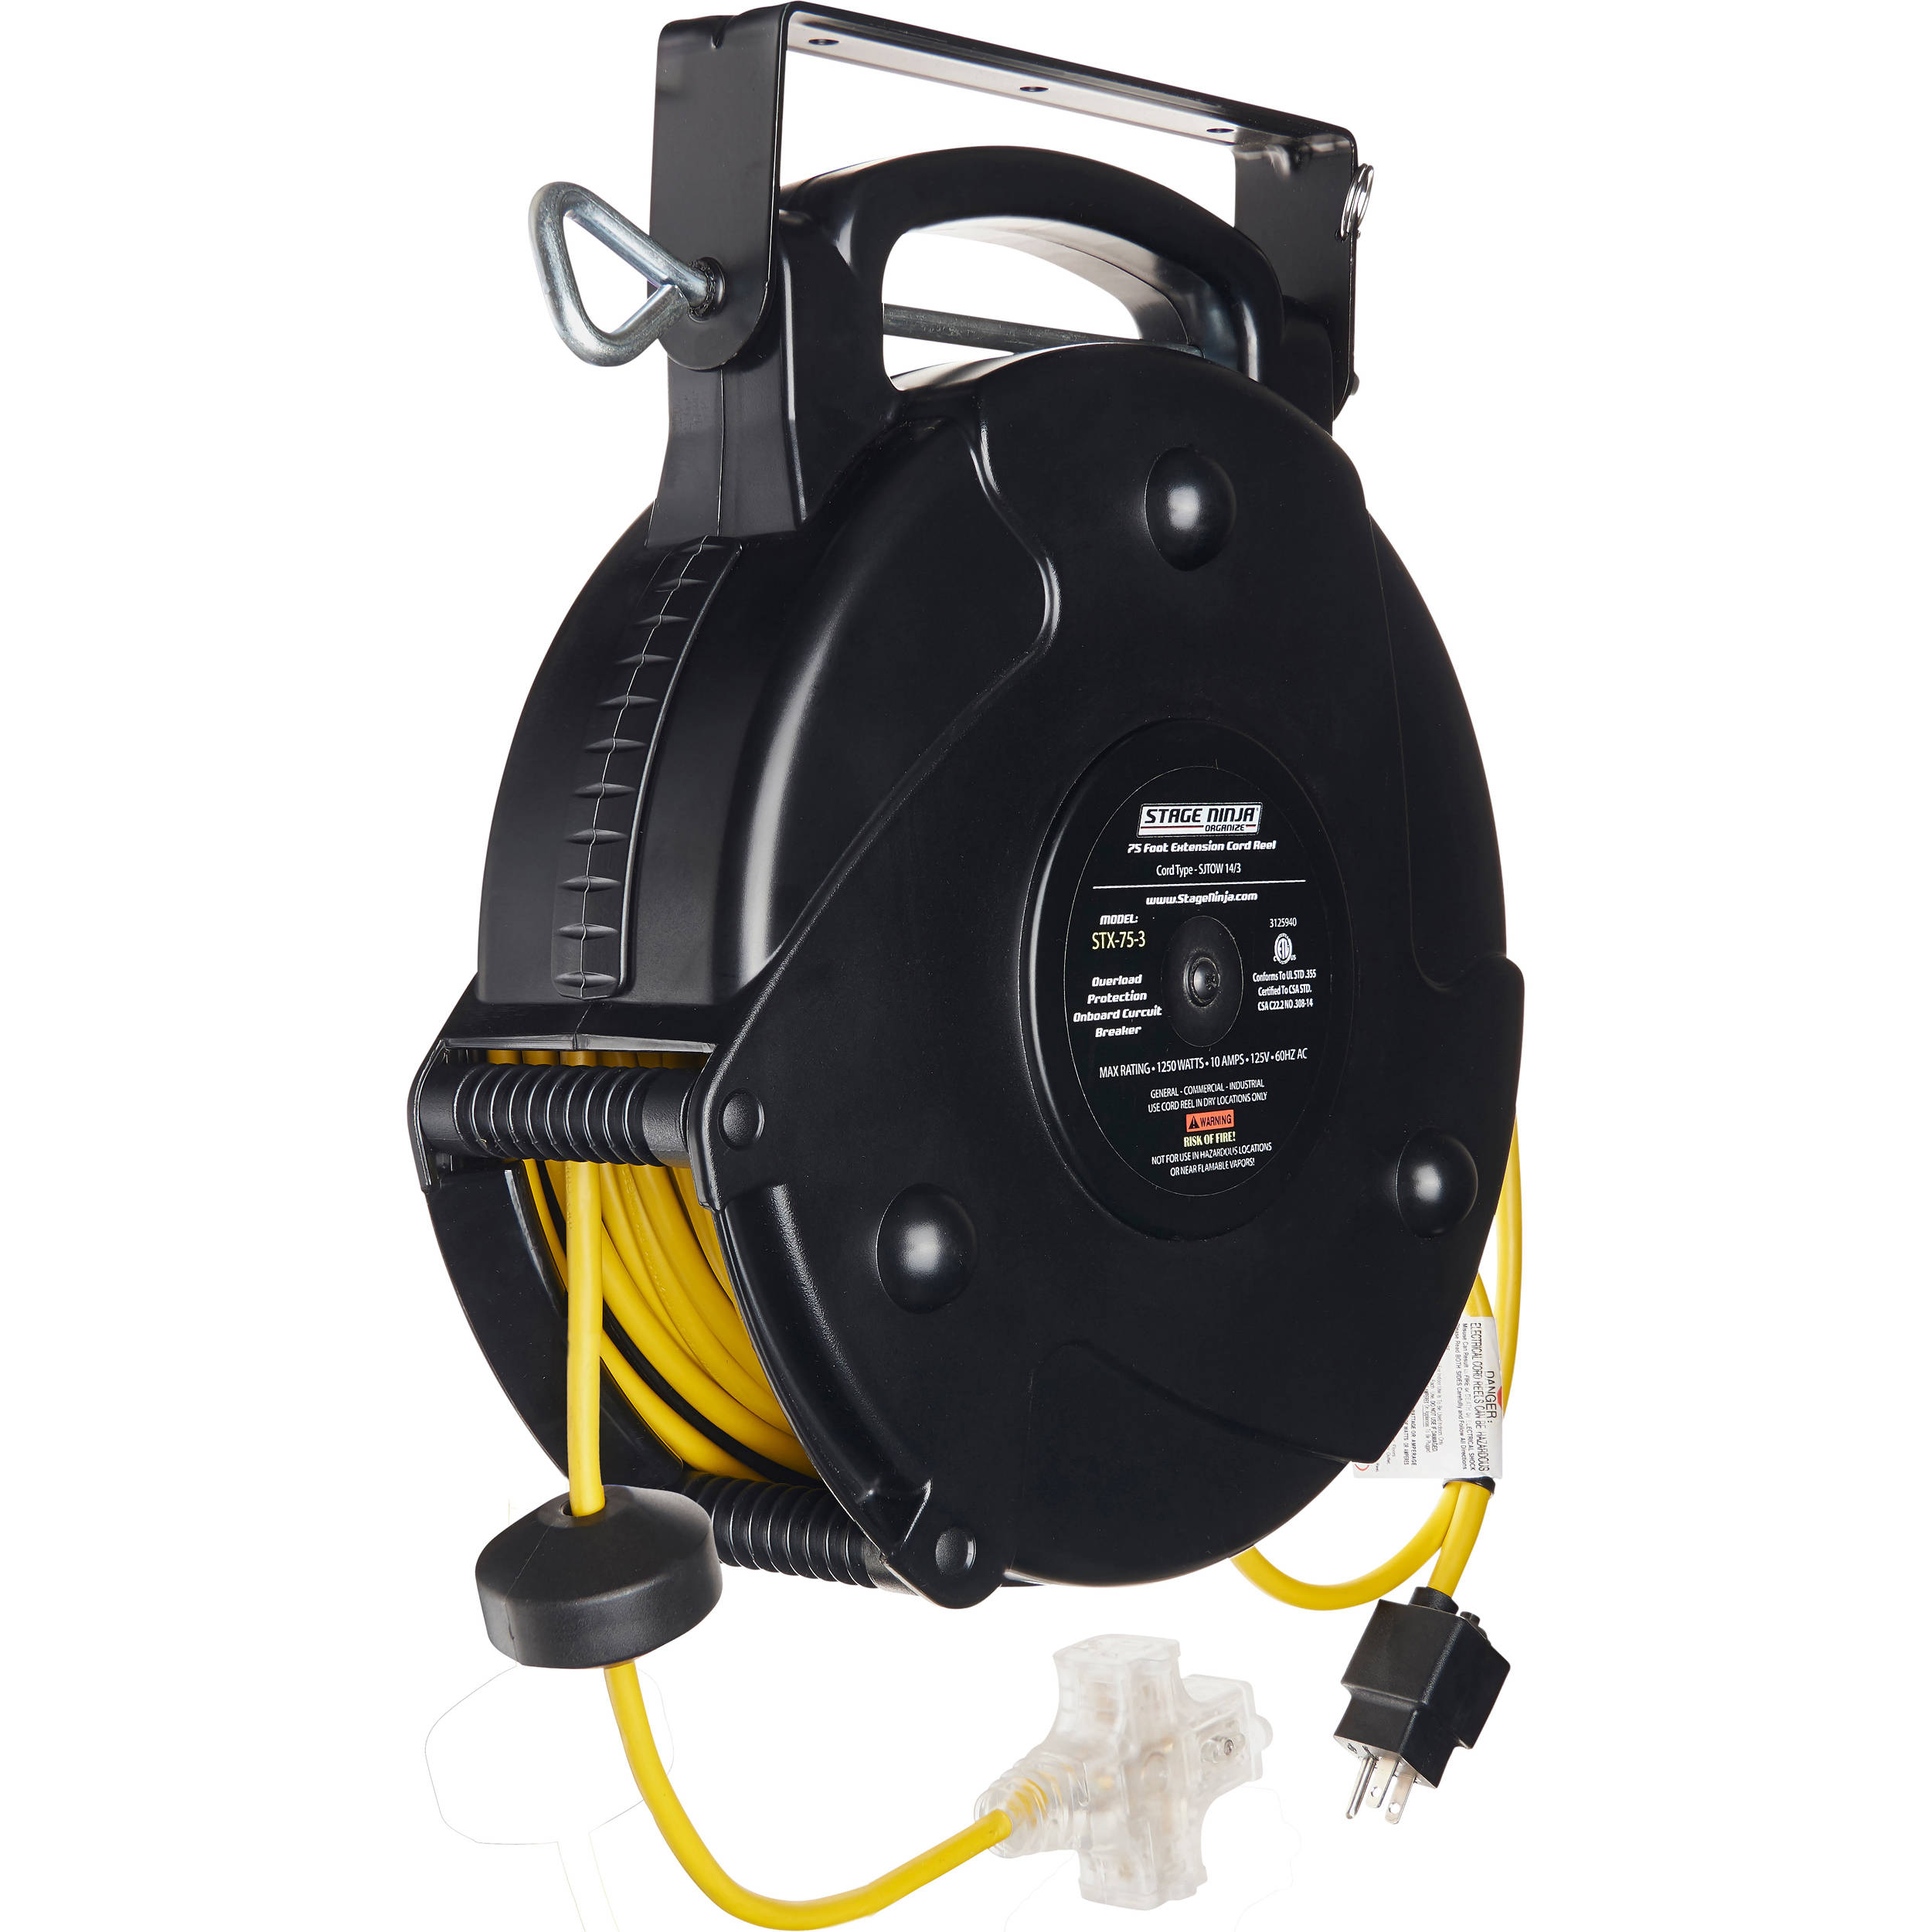 Retractable Extension Cord Reel >> Stage Ninja 14 Awg 3 Outlet Retractable Power Reel With Led Power Indicator And Circuit Breaker Yellow Cord Black Thermoplastic Housing 75